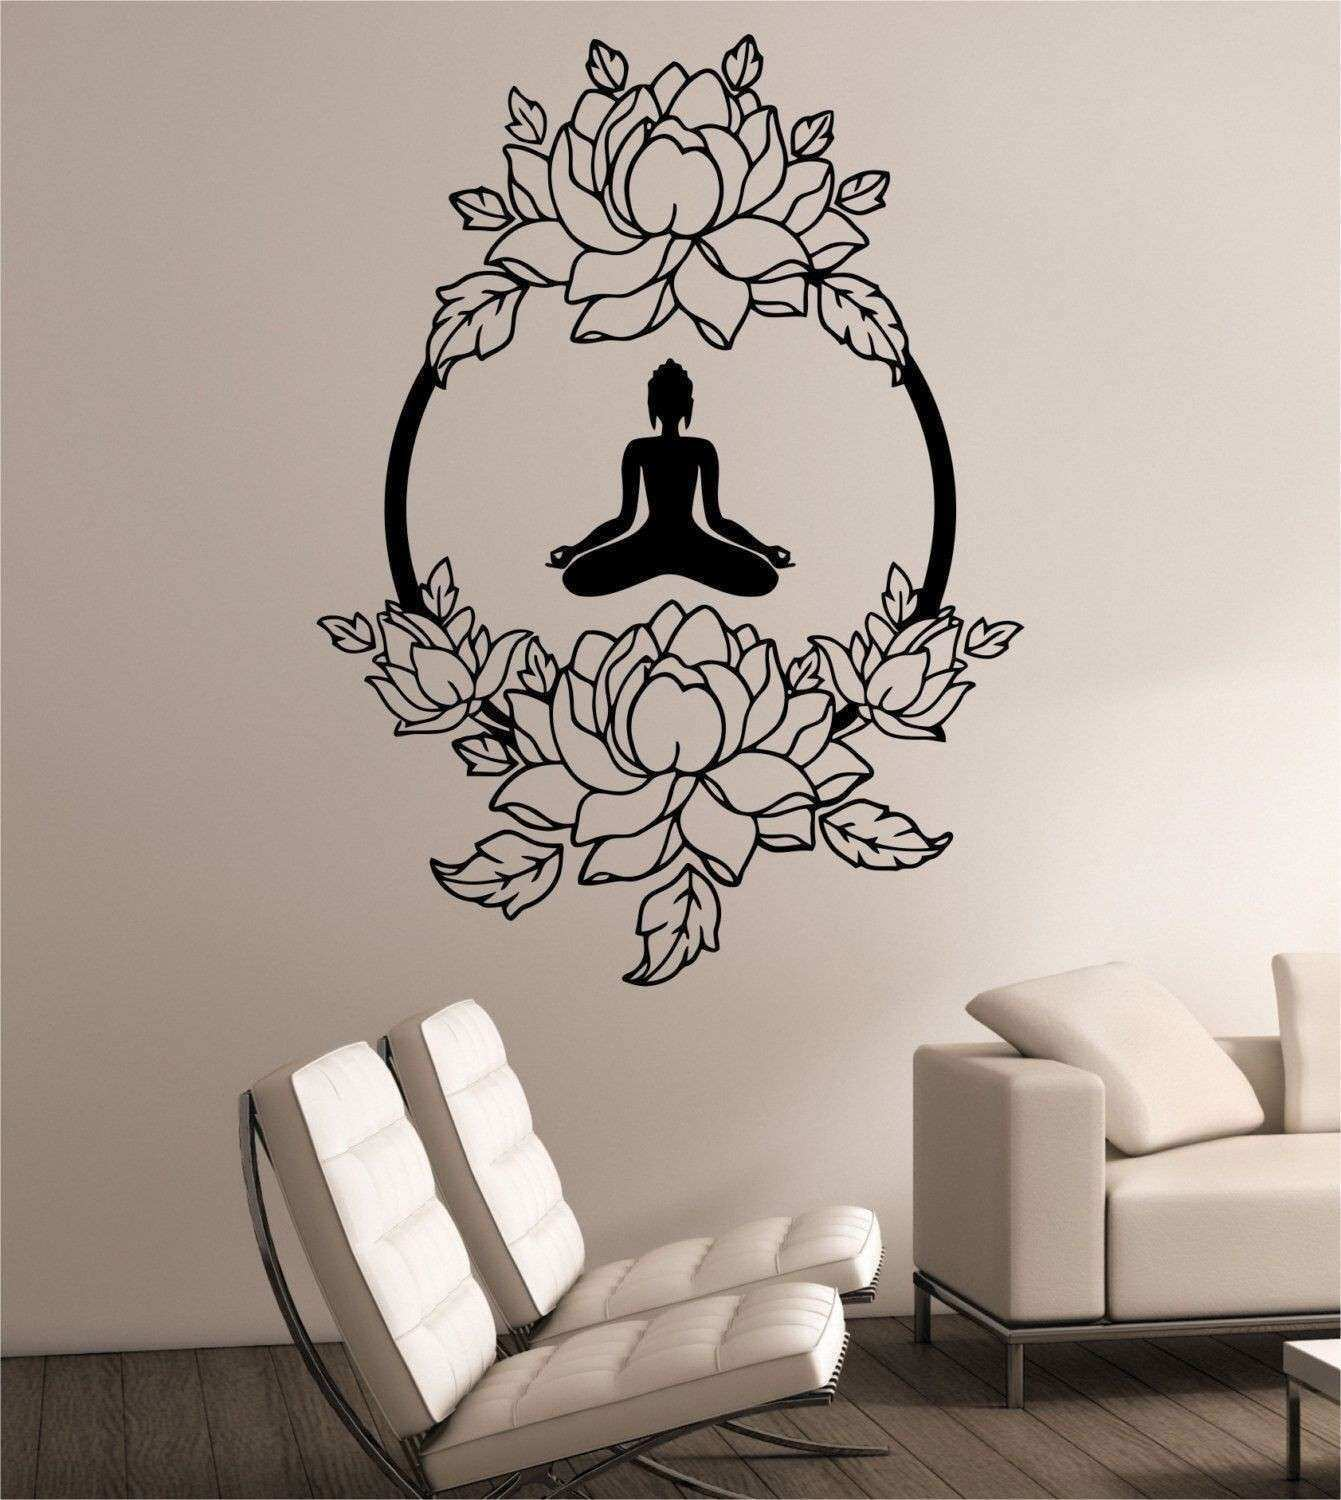 Best Decorative Wall Decals for Living Room